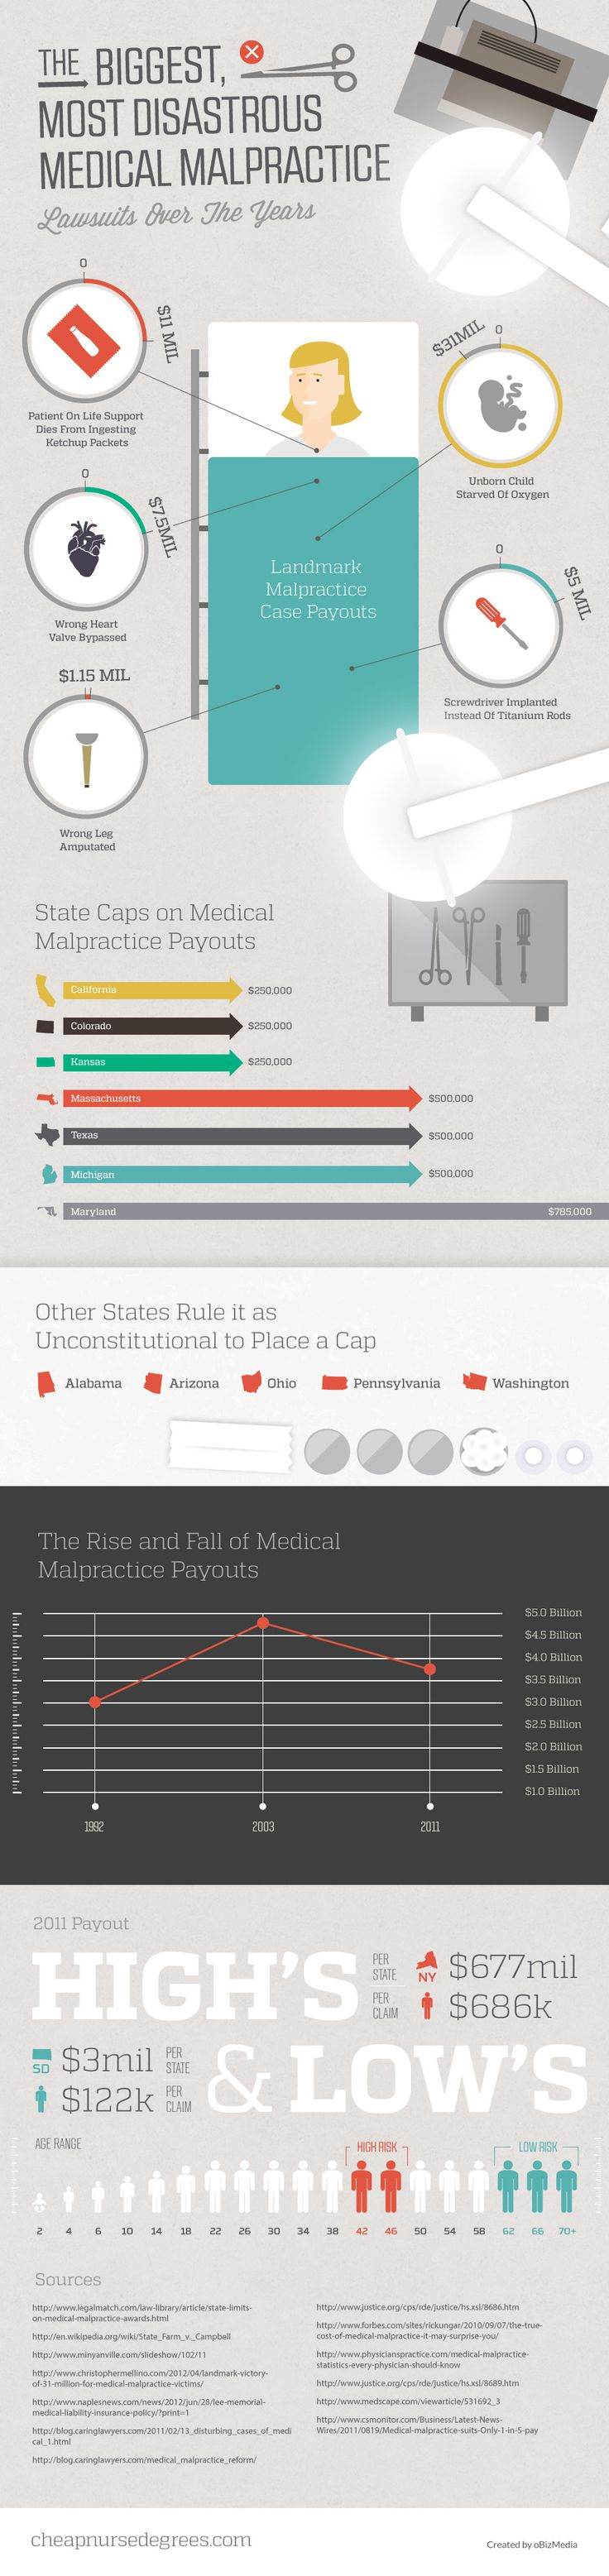 The Most #Disastrous #Medical #Malpractice #Lawsuits #infographic